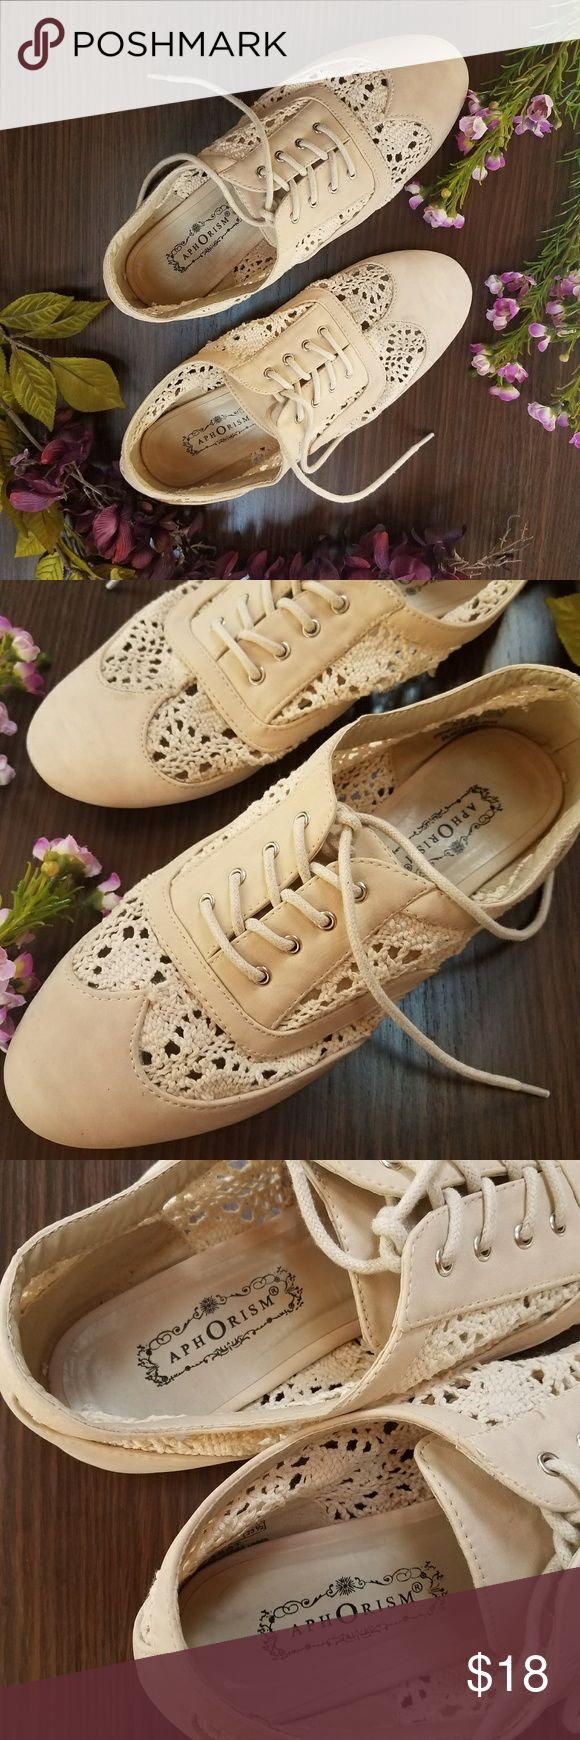 Crocheted Lace oxfords Cream colored lace-up Oxfords. Whimsical crocheted lace detailing. I got complimented every time I wore these! But they just don't match enough of my wardrobe. Please see photos for signs of wear. There is one spot that is a tiny bit undone (3rd to last pic) but  it's not noticeable unless you're examining them. Also a spot of discoloration (2nd to last pic) but I have not tried washing them so I'm not sure if it will come out. Aphorism Shoes Flats & Loafers